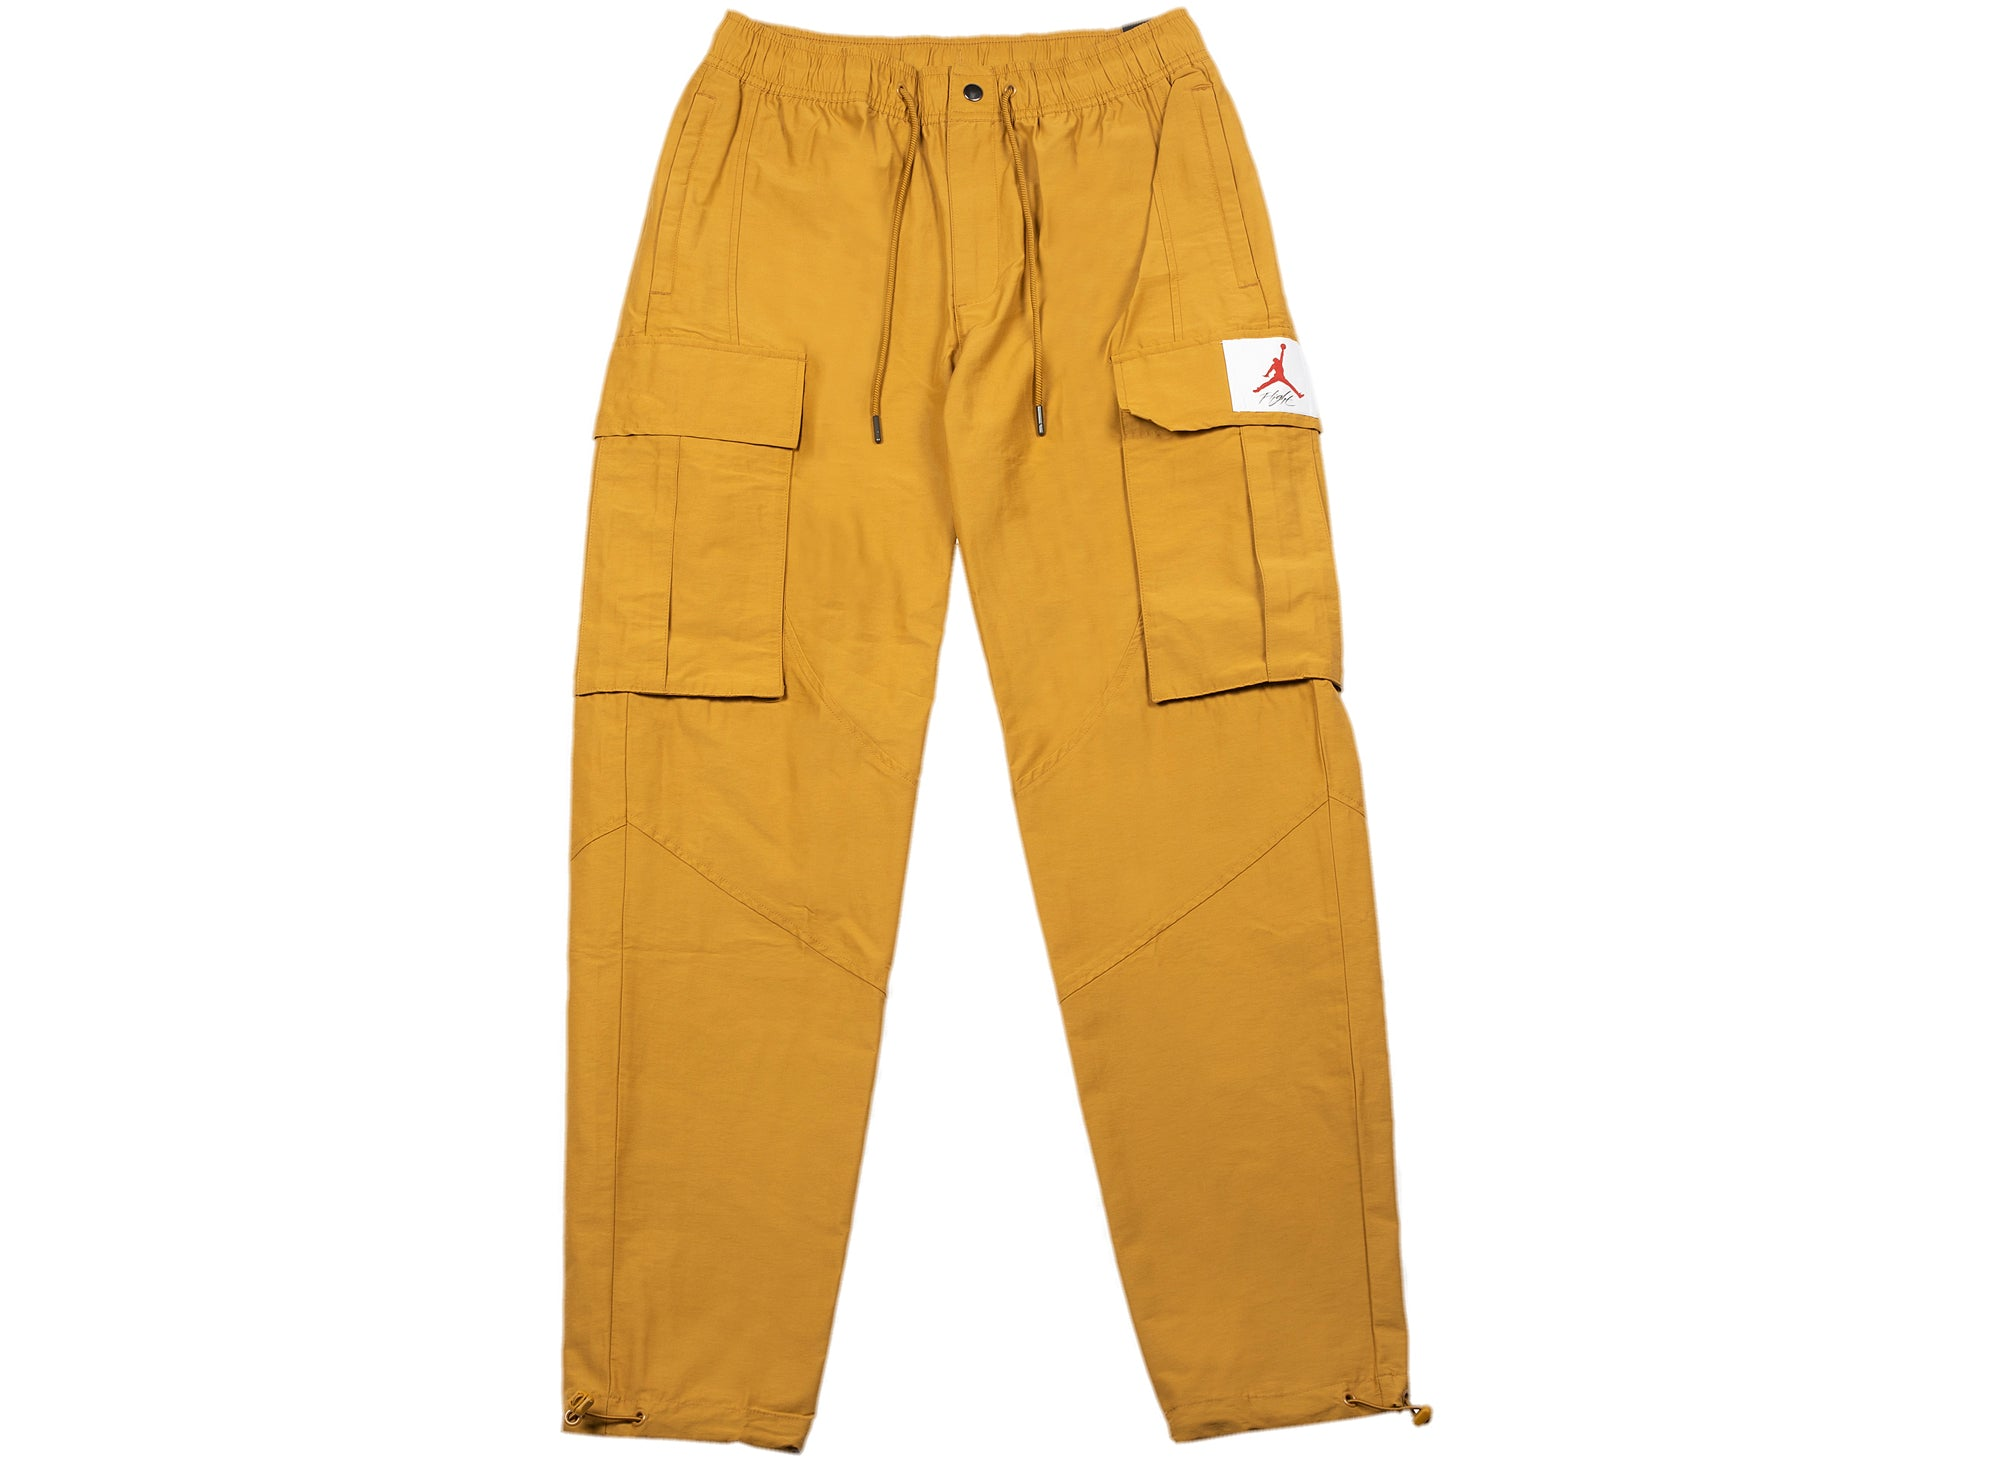 Jordan Flight Woven Pants in Wheat xld